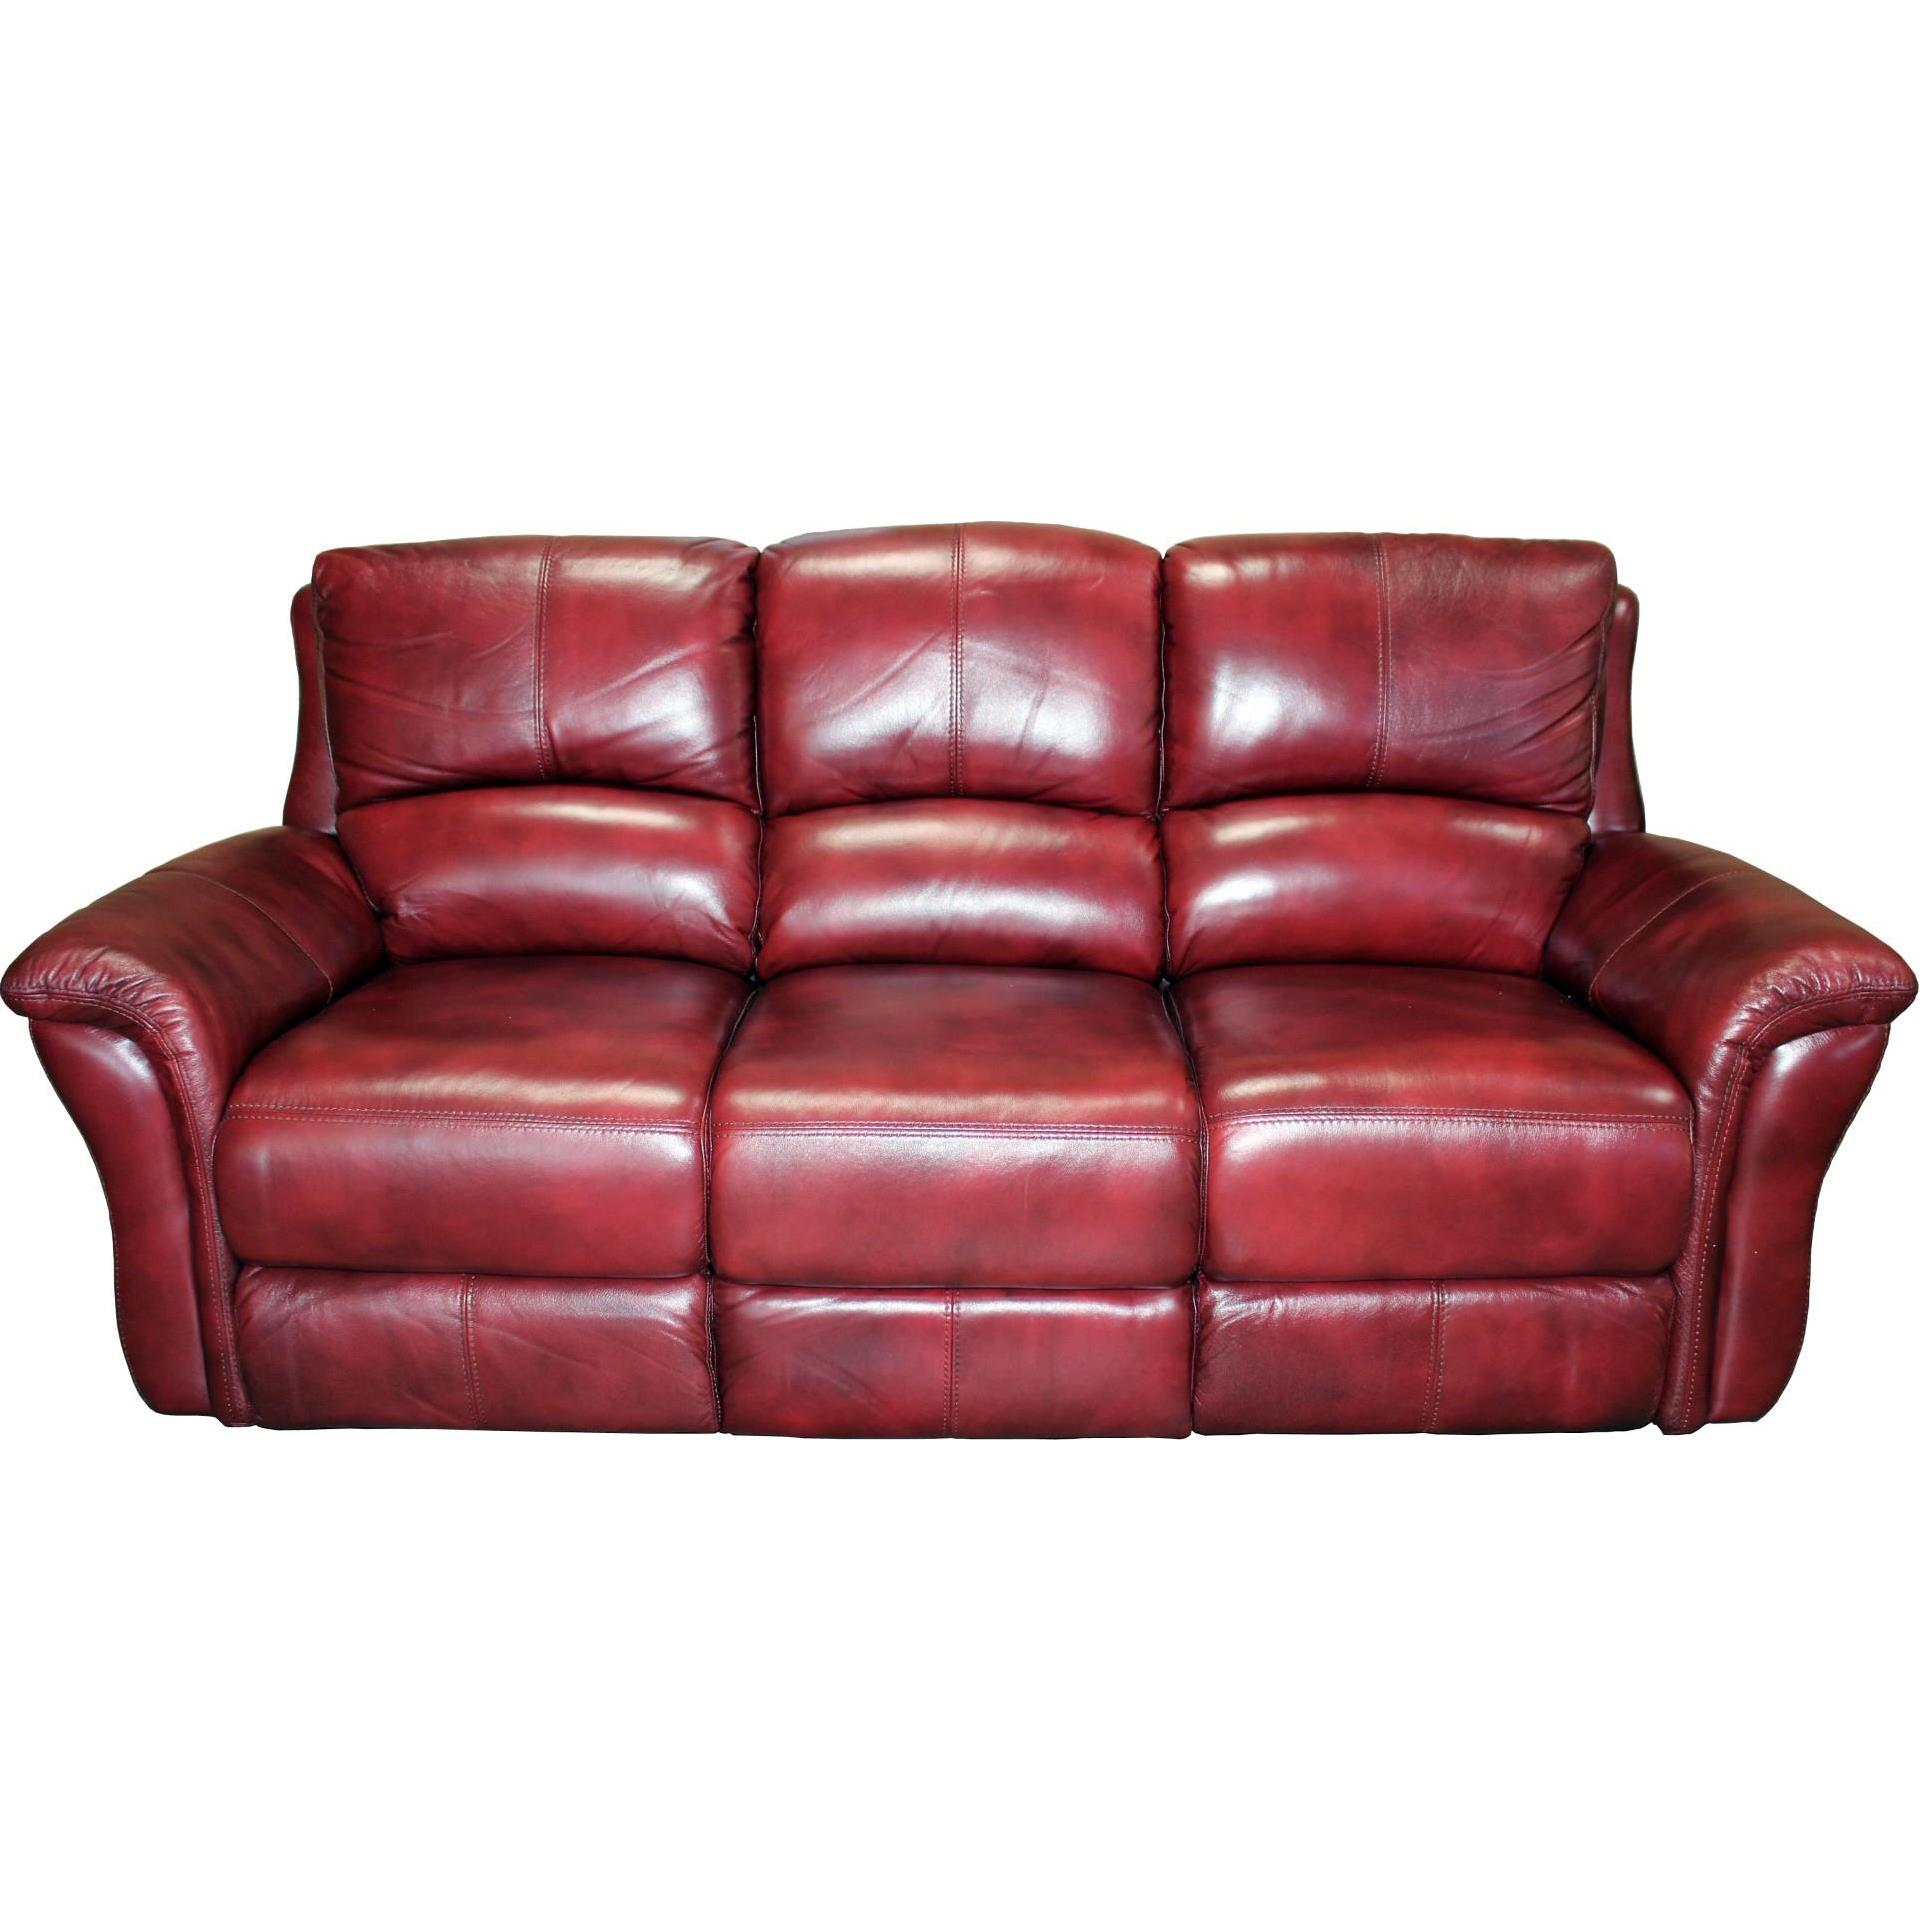 Parker Living Lewis Casual Reclining Sofa - Item Number: MLEW-832P-LI